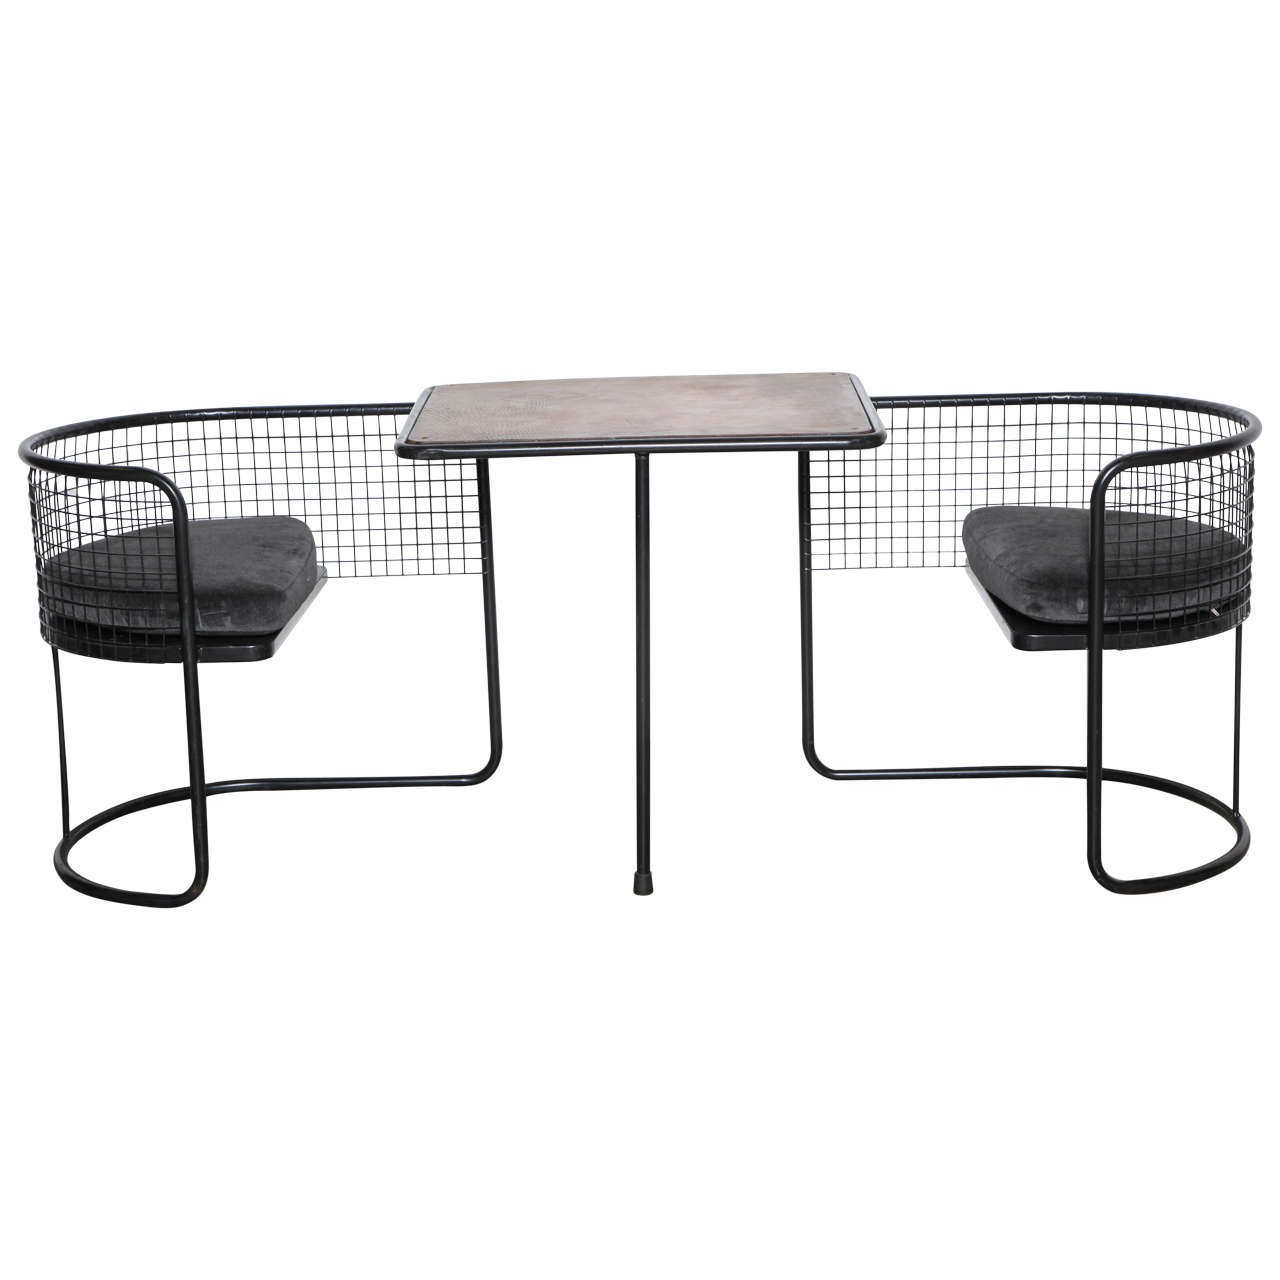 French Iron and Wood Game Table with Leather Top and Chairs